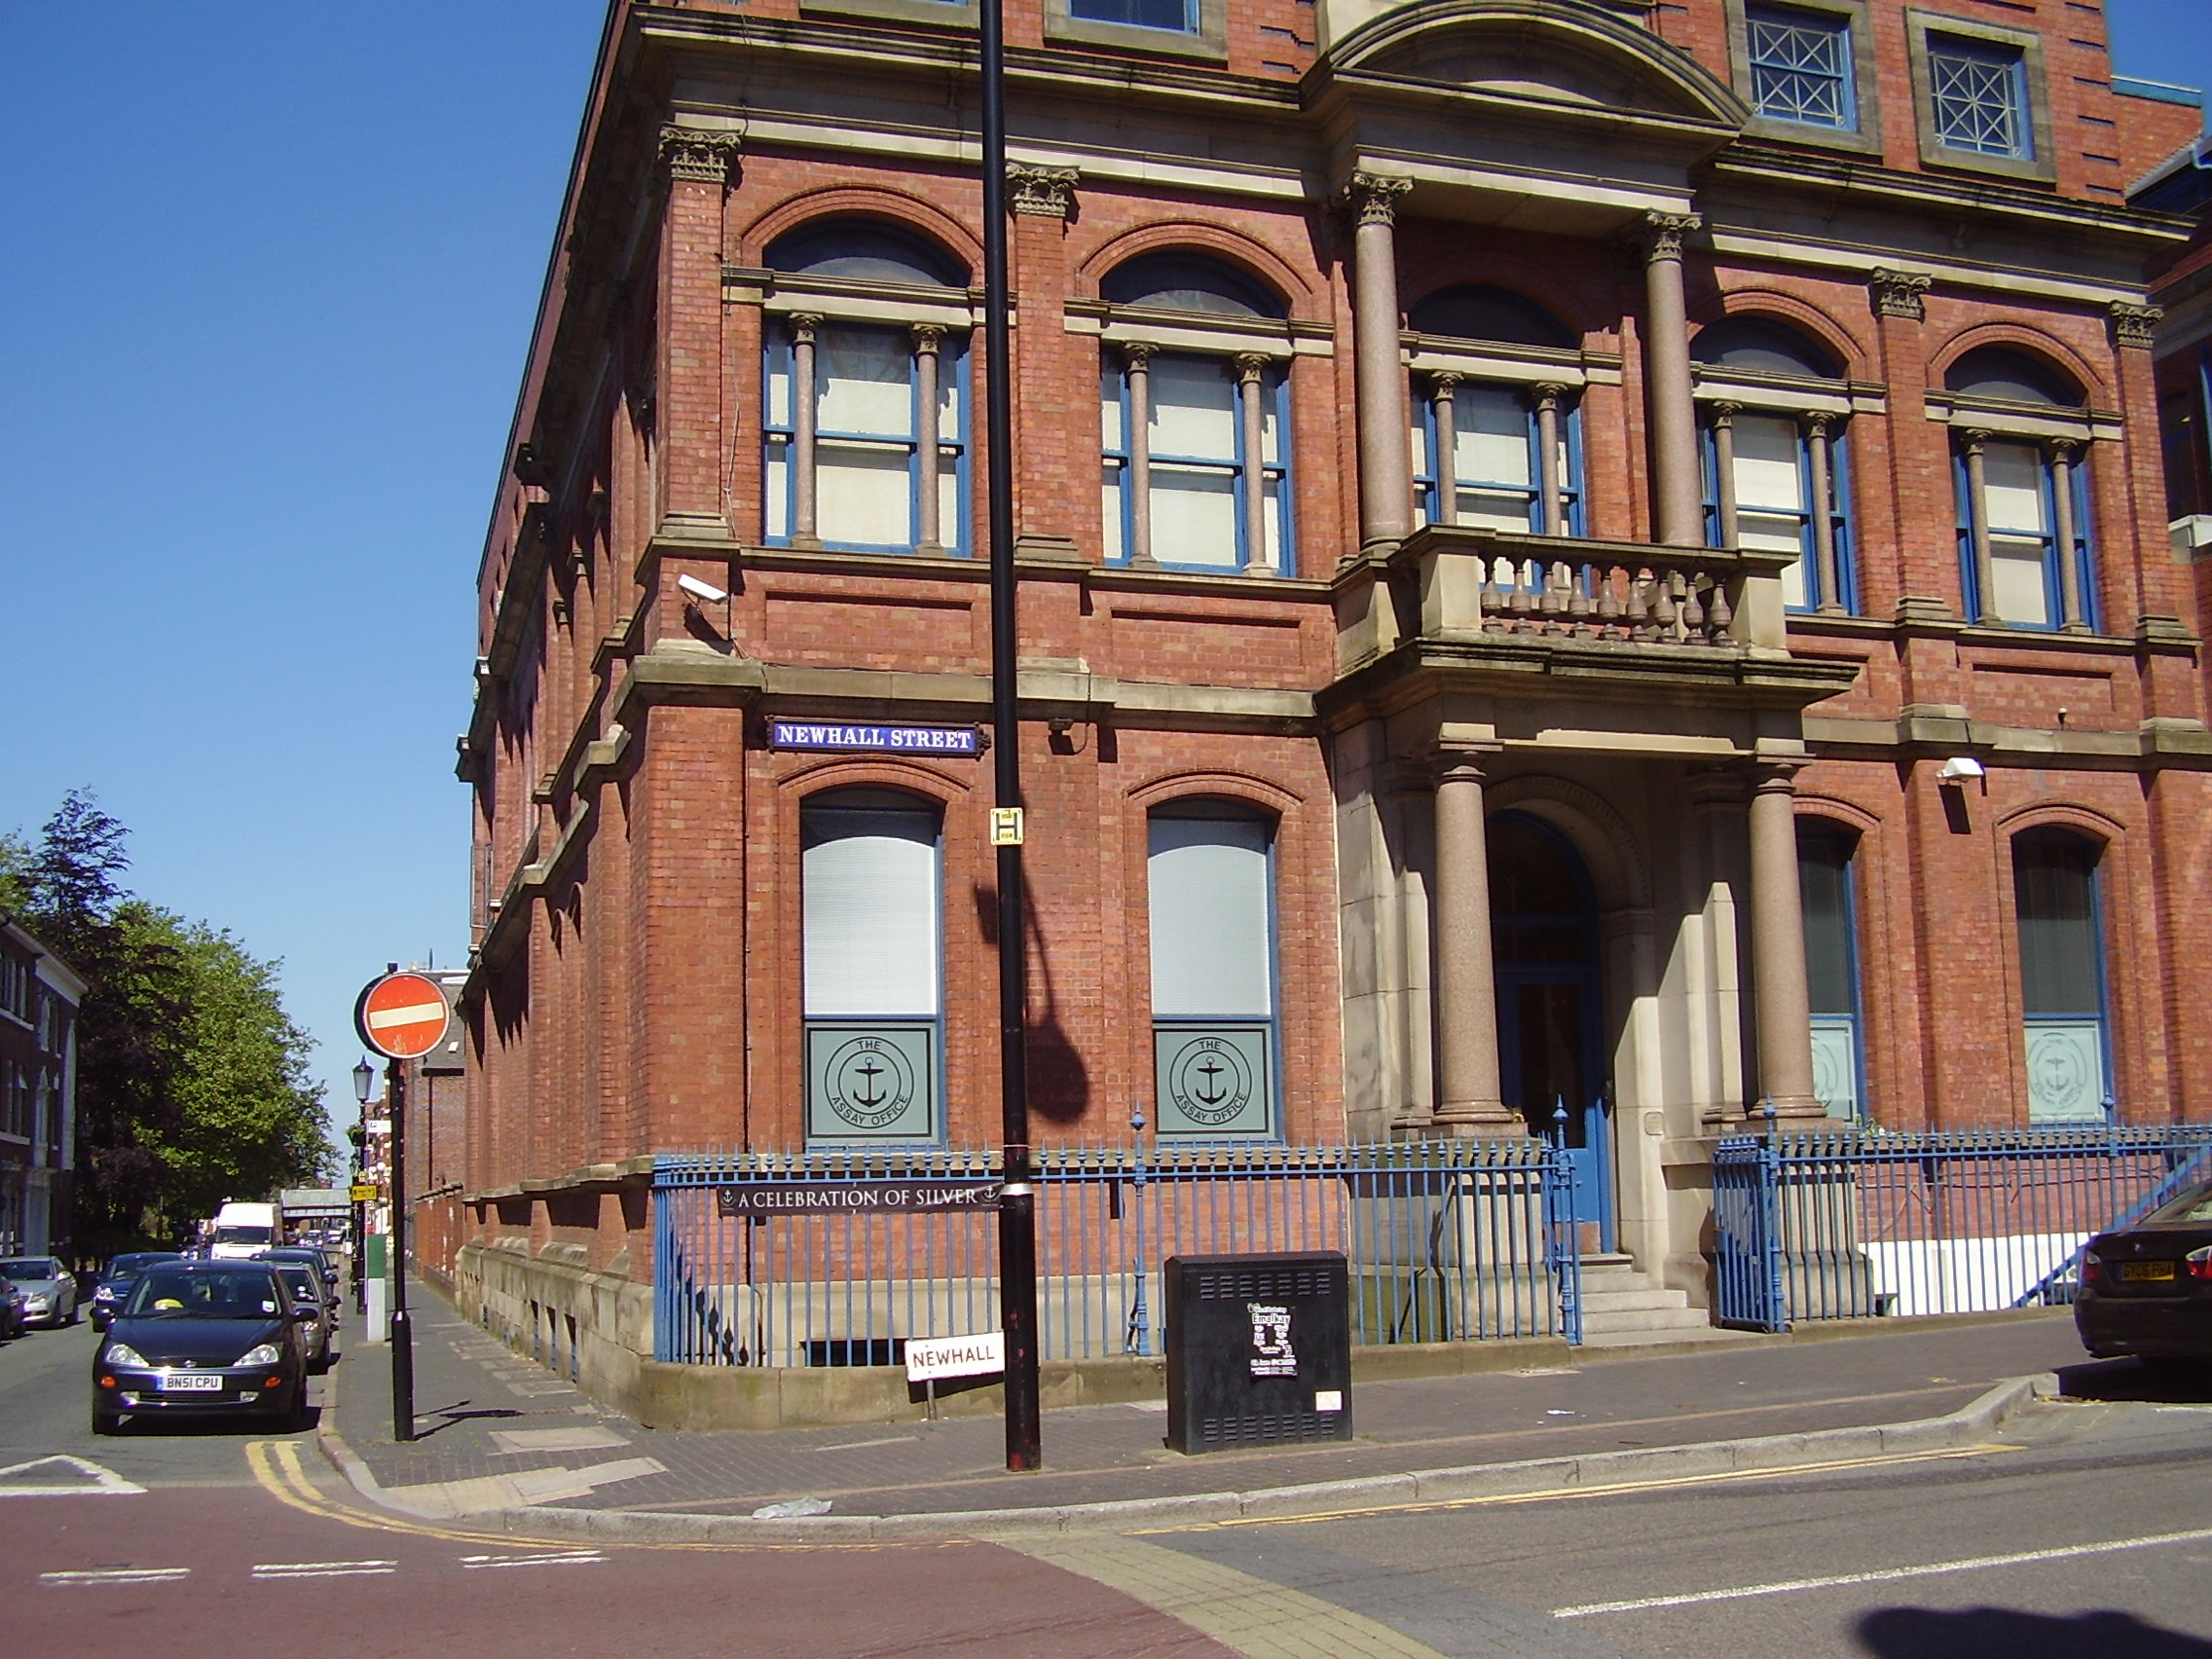 The Birmingham Assay Office Built 1773 Newhall Street, Jewellery Quarter Birmingham 2008